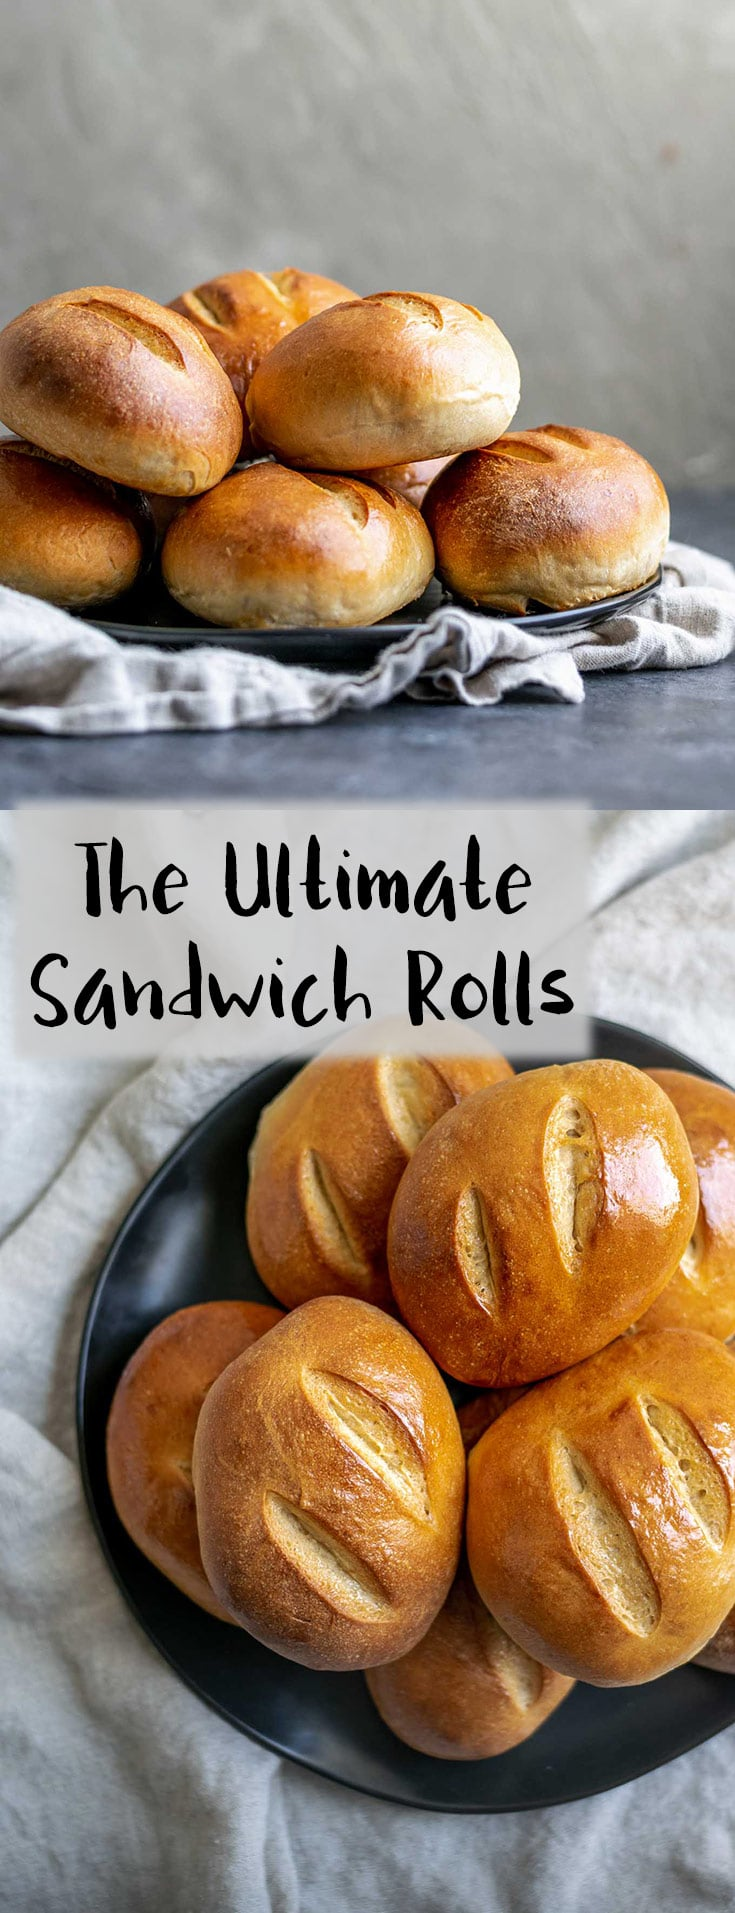 The Ultimate Homemade Sandwich Rolls The Curious Chickpea